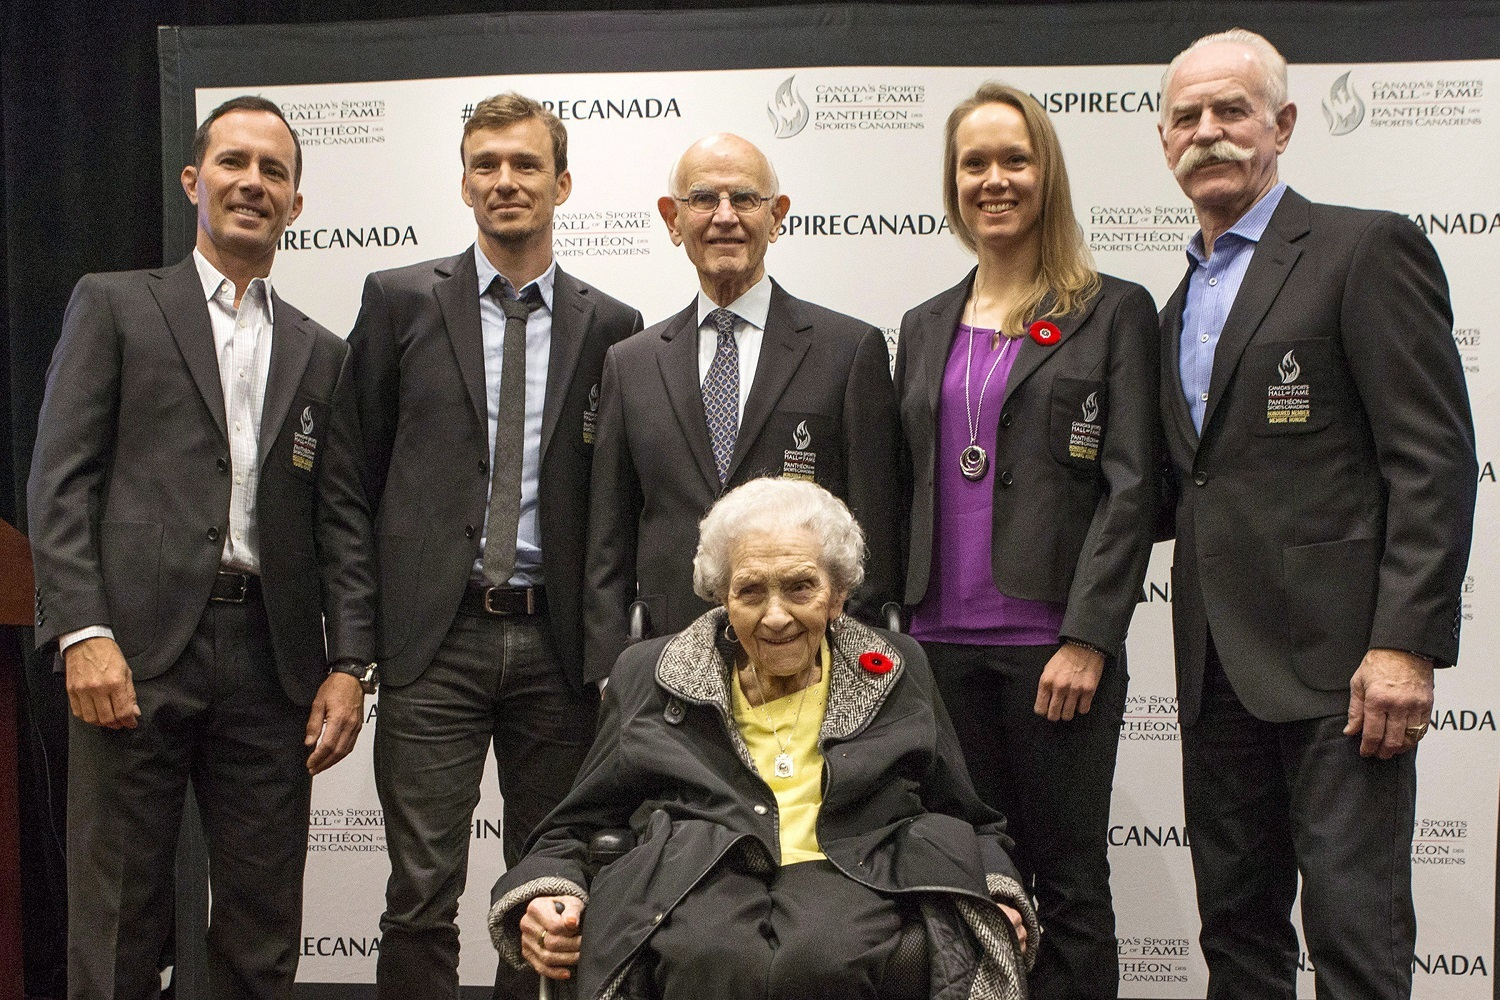 Dr. Charles Tator, centre top, at the announcement regarding his induction into the Canadian Sports Hall of Fame in Toronto, on Thursday, November 9, 2017. Dr. Tator was a 2016 Berlin consensus statement author, but is critical of its section on CTE. He is next to, from left to right, Mike Weir, Simon Whitfield, Tator, Cindy Klassen, Lanny McDonald and Kay MacBeth, sitting. (Chris Young/Canadian Press)